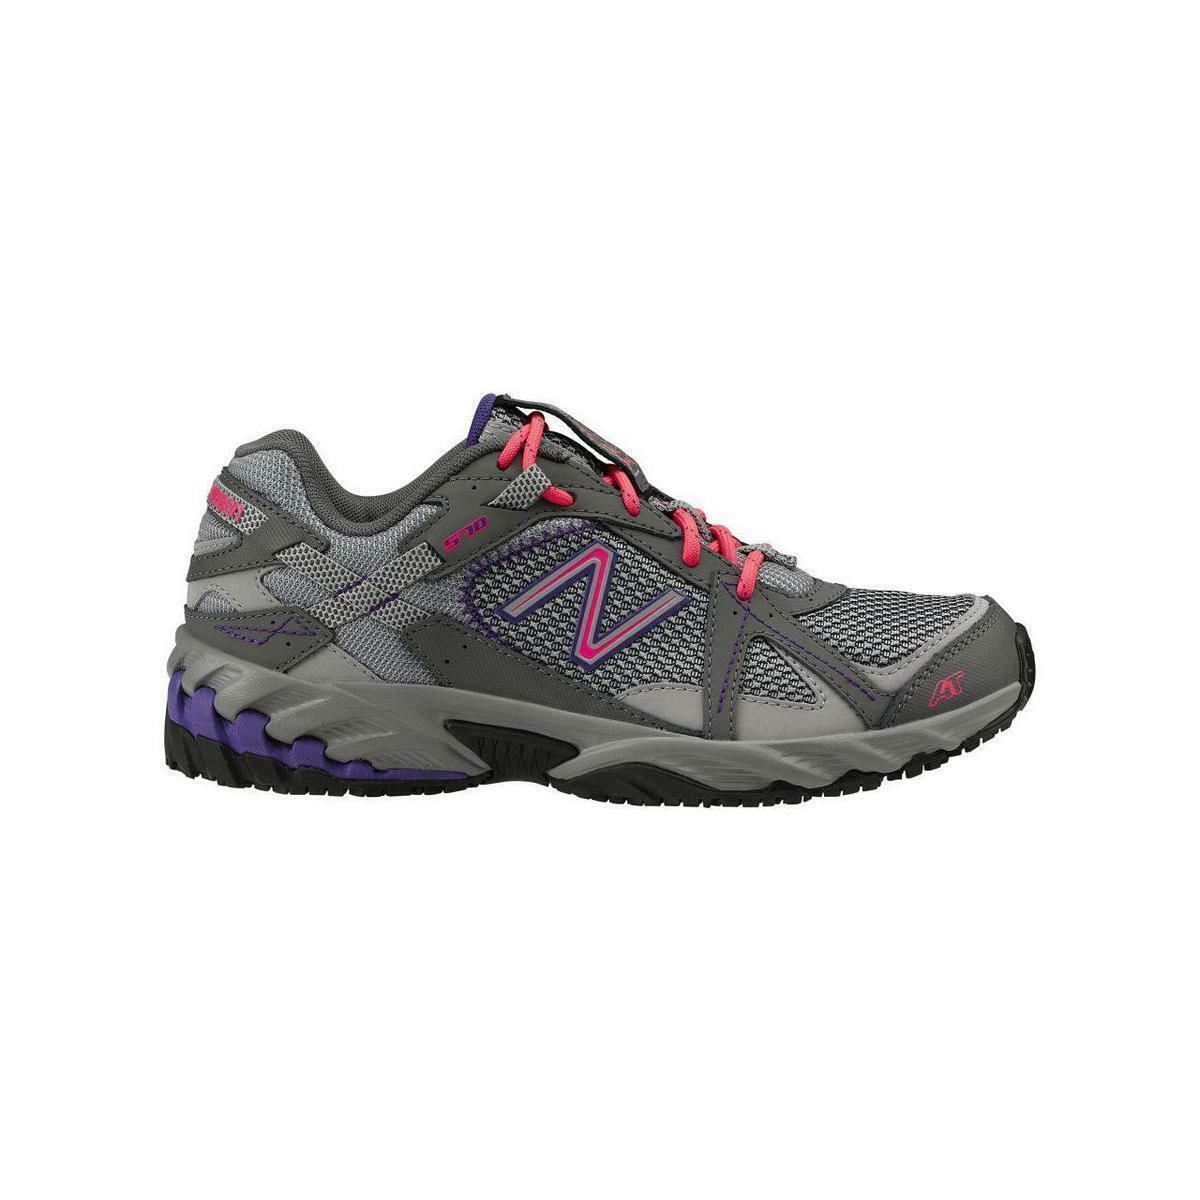 New Balance 570 SUREGRIP  Work Womens Grey/purple/Pink  Sneakers SZ 5.5 B